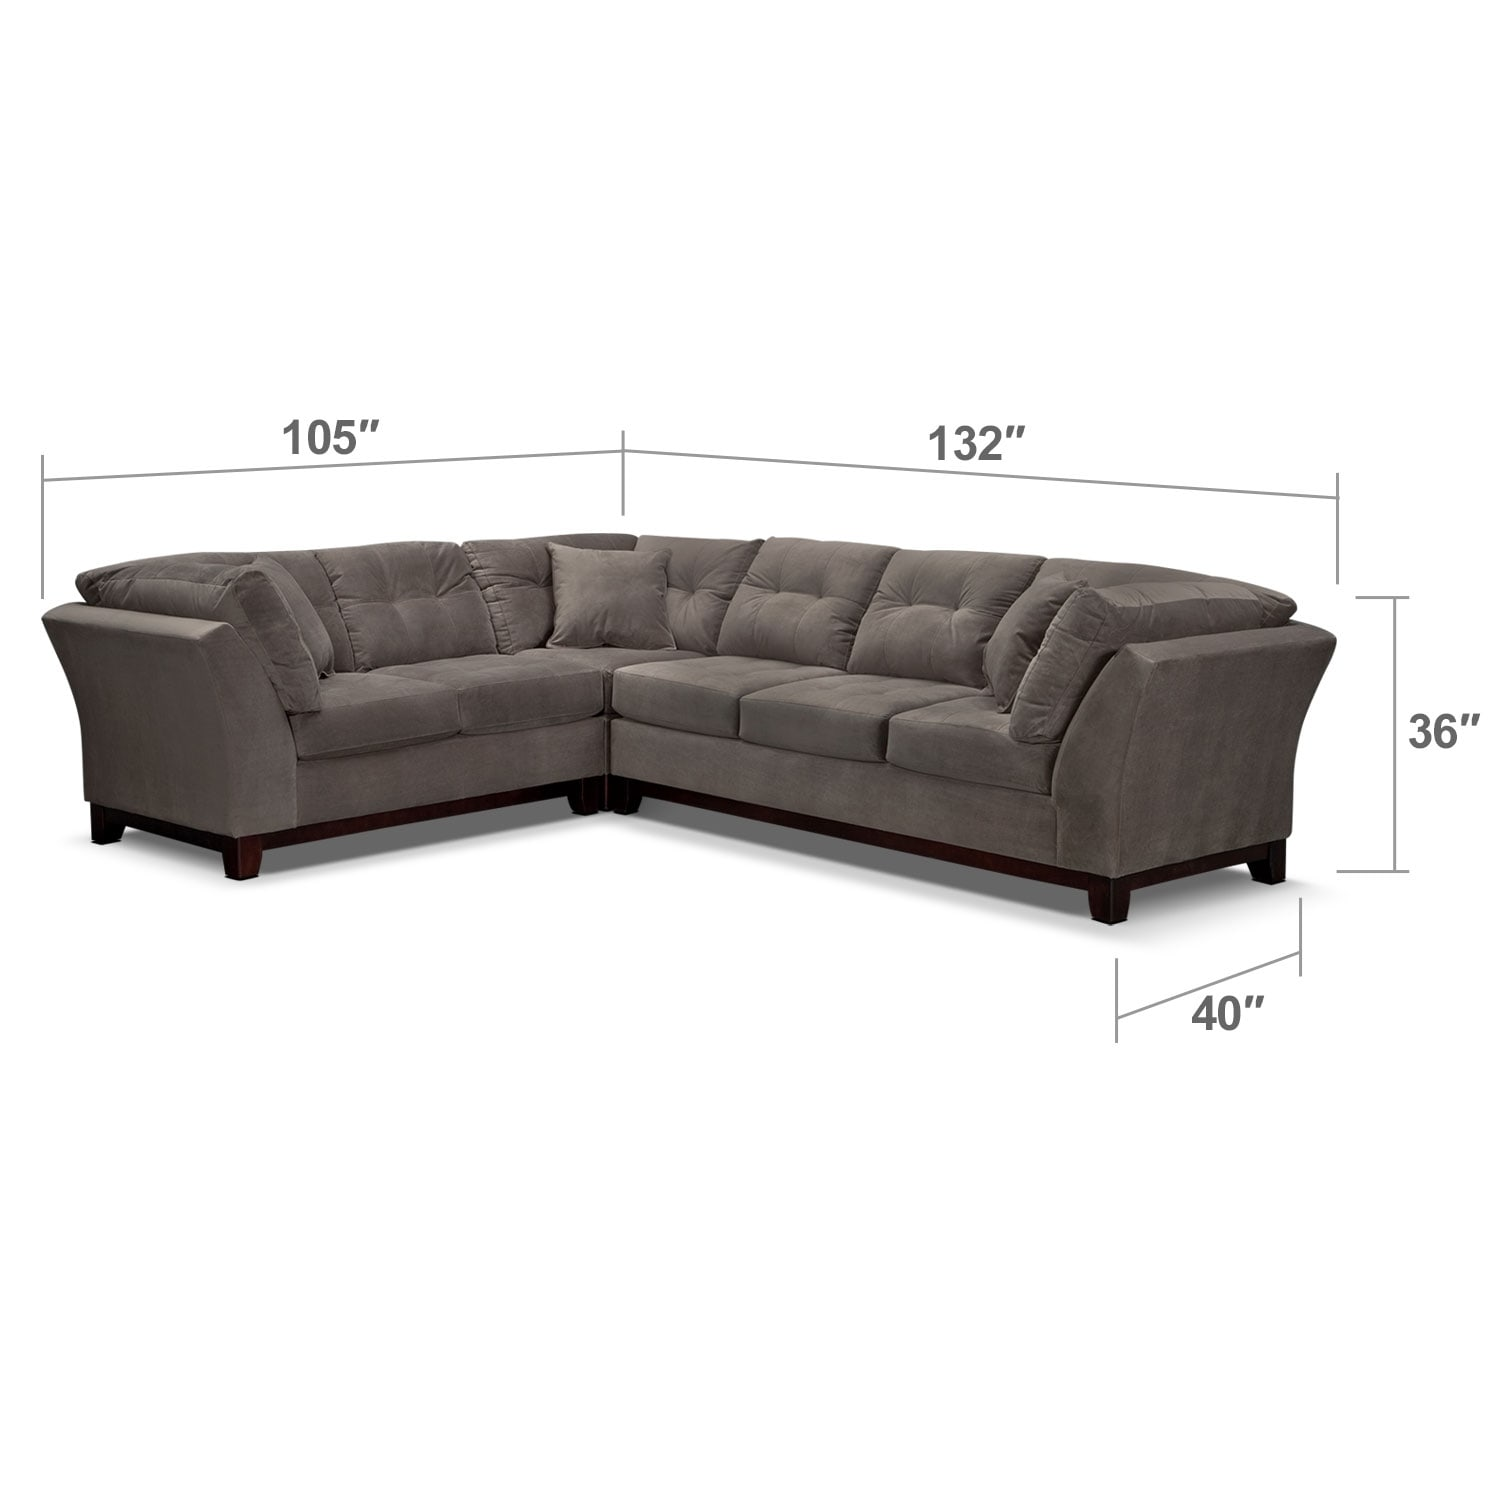 Living Room Furniture - Solace 3-Piece Right-Facing Sofa Sectional - Gray